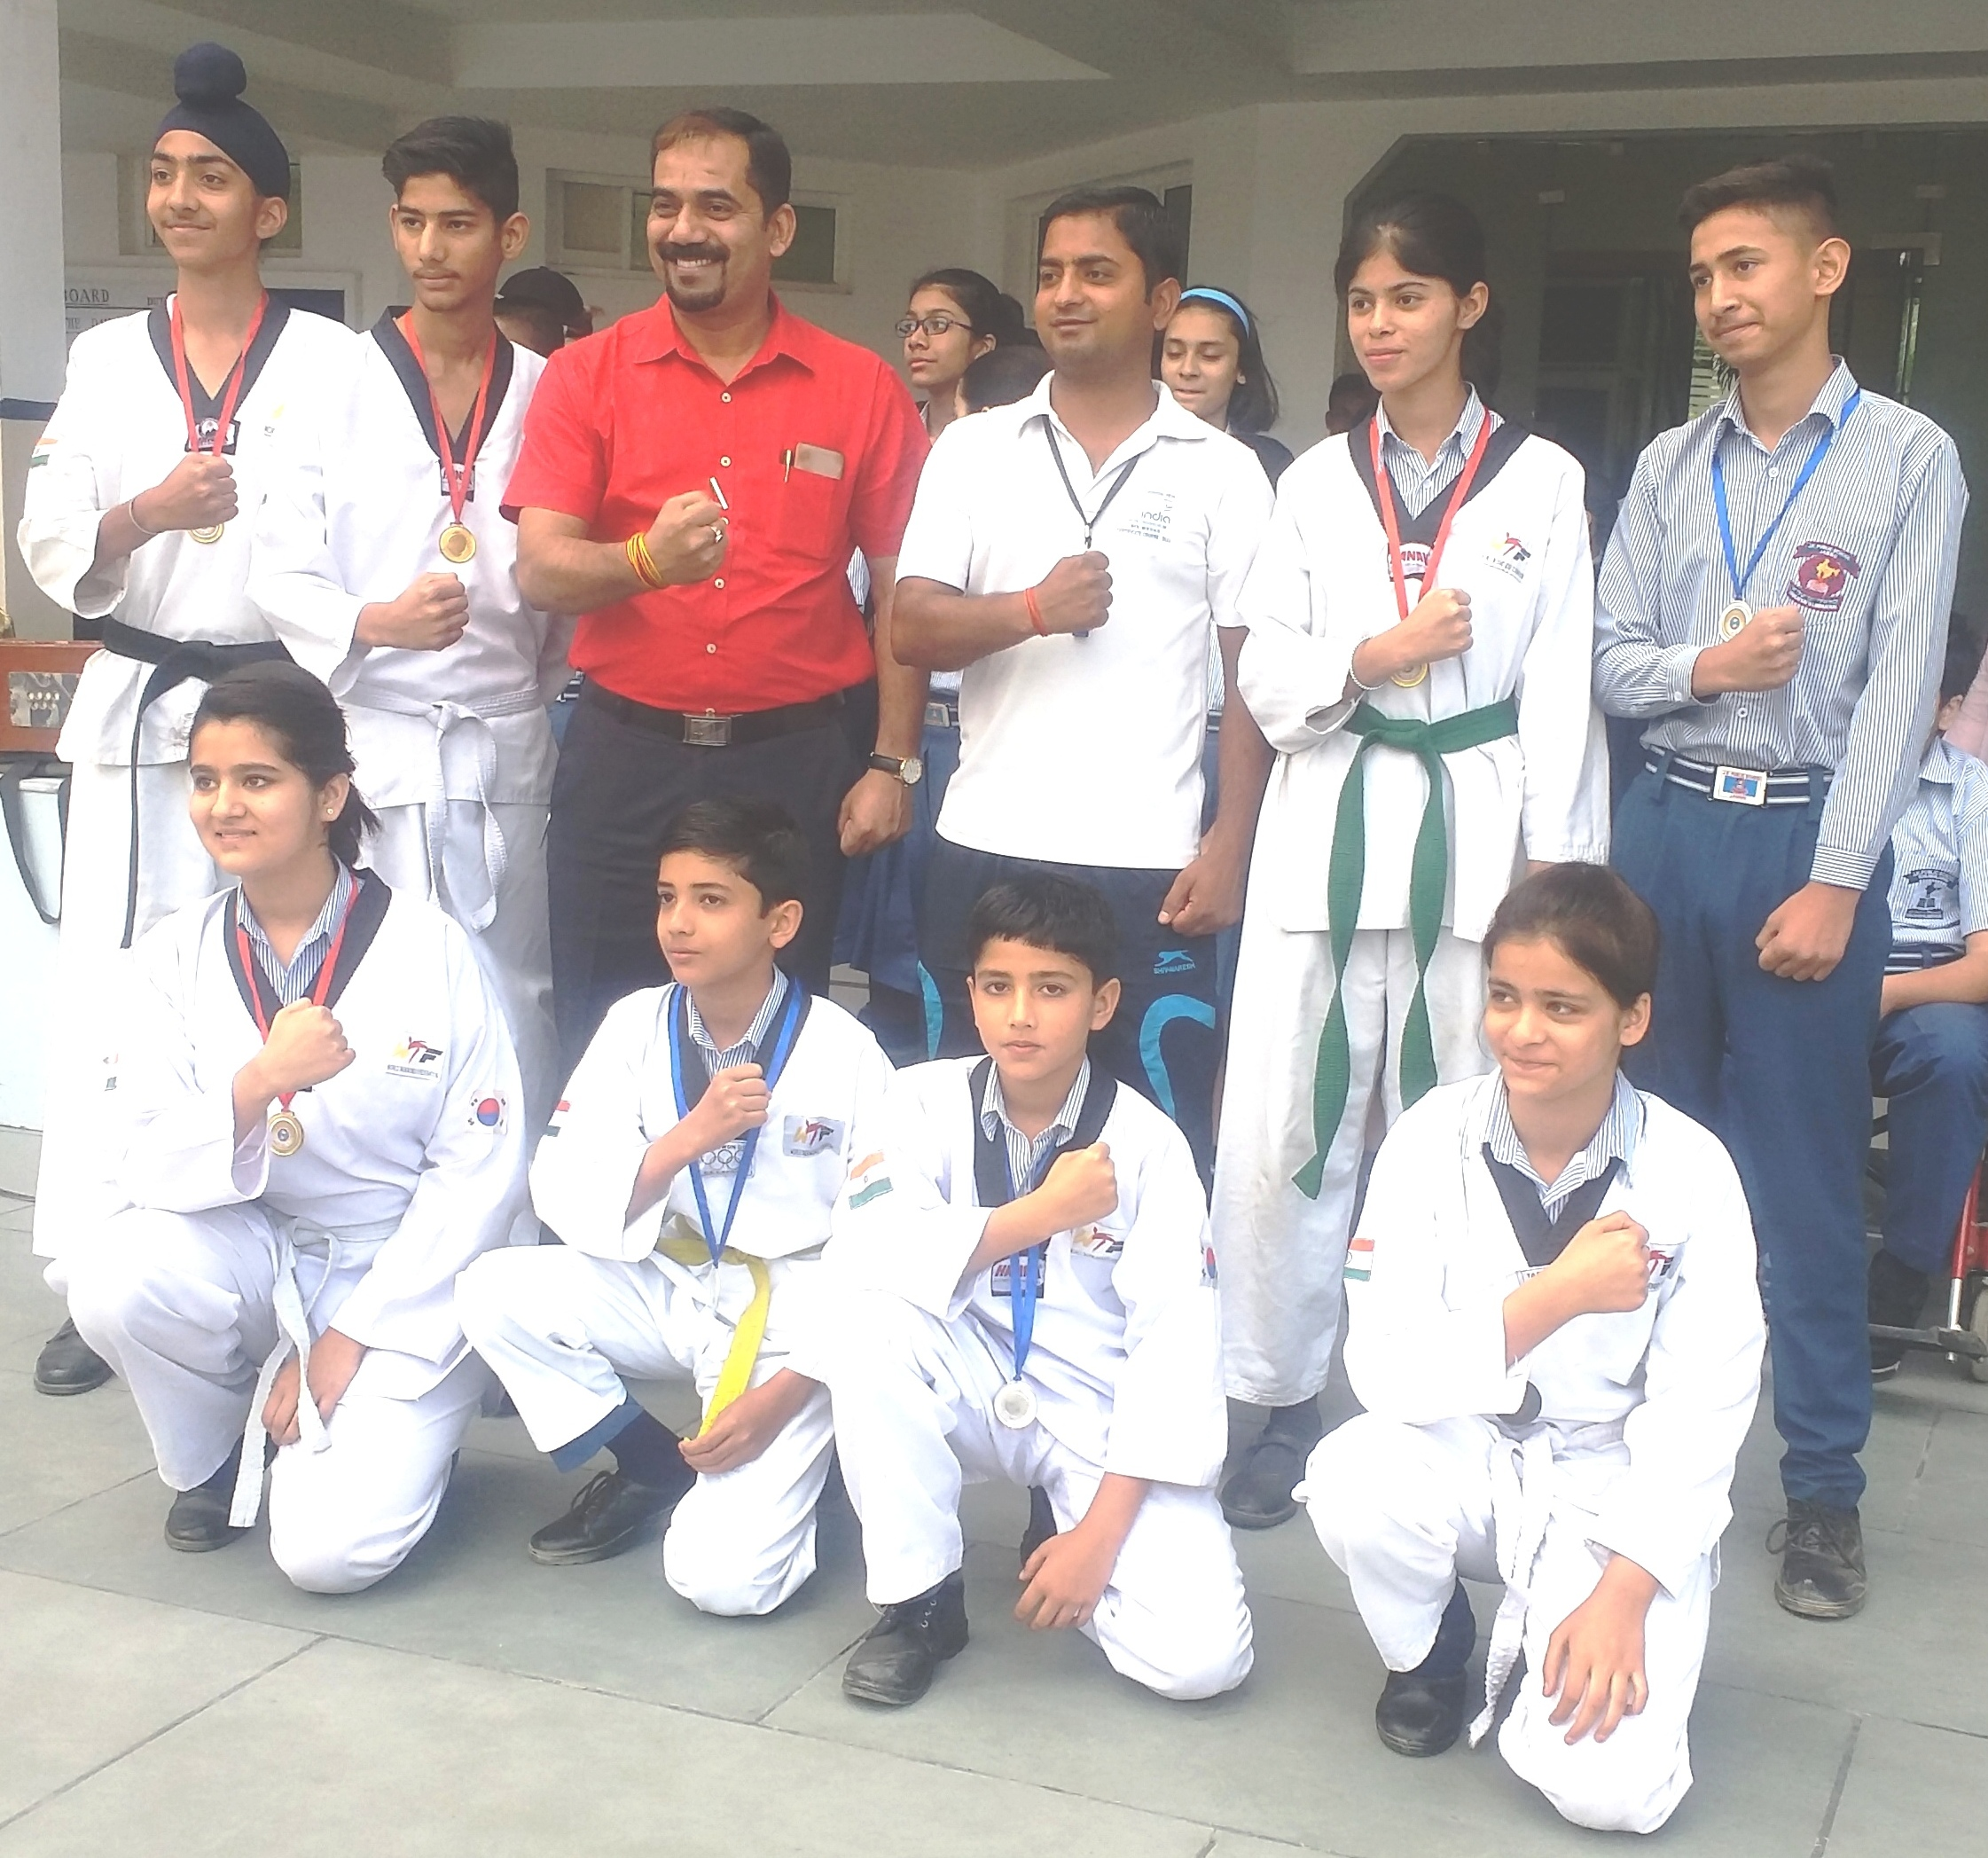 DYSS TAEKWONDO DISTRICT CHAMPIONSHIP